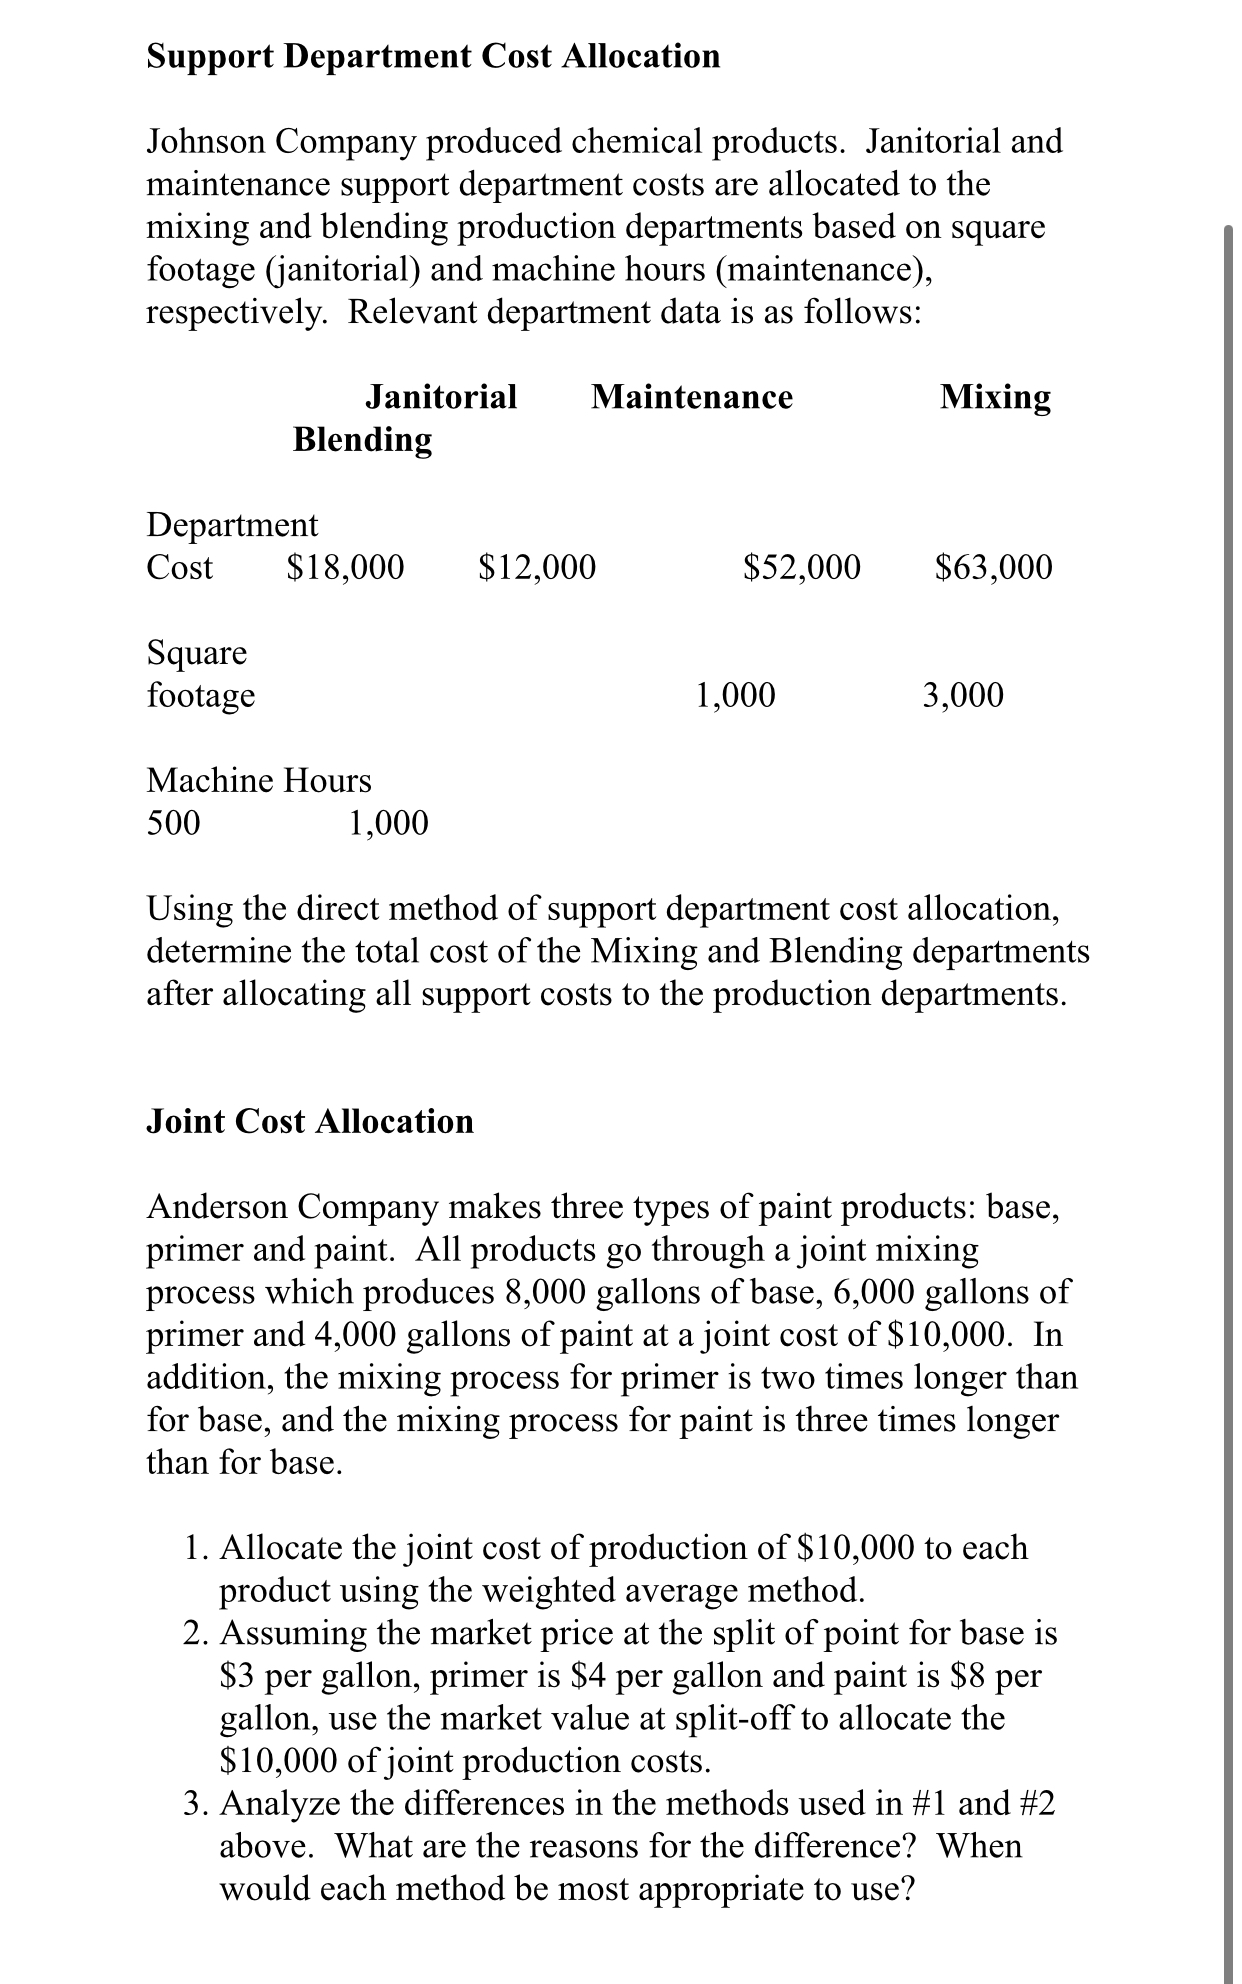 Support Department Cost Allocation Johnson Company produced chemical products. Janitorial and maintenance support department costs are allocated to the mixing and blending production departments based on square footage (janitorial) and machine hours (maintenance), respectively. Relevant department data is as follows: Janitorial Maintenance Mixing Blending Department $18,000 Cost $12,000 $52,000 $63,000 Square footage 1,000 3,000 Machine Hours 500 1,000 Using the direct method of support department cost allocation, determine the total cost of the Mixing and Blending departments after allocating all support costs to the production departments. Joint Cost Allocation Anderson Company makes three types of paint products: base, primer and paint. All products go through a joint mixing process which produces 8,000 gallons of base, 6,000 gallons of primer and 4,000 gallons of paint at a joint cost of $10,000. In addition, the mixing process for primer is two times longer than for base, and the mixing process for paint is three times longer than for base. 1. Allocate the joint cost of production of $10,000 to each product using the weighted average method. 2. Assuming the market price at the split of point for base is $3 per gallon, primer is $4 per gallon and paint is $8 per gallon, use the market value at split-off to allocate the $10,000 of joint production costs. 3. Analyze the differences in the methods used in #1 and #2 above. What are the reasons for the difference? When would each method be most appropriate to use?